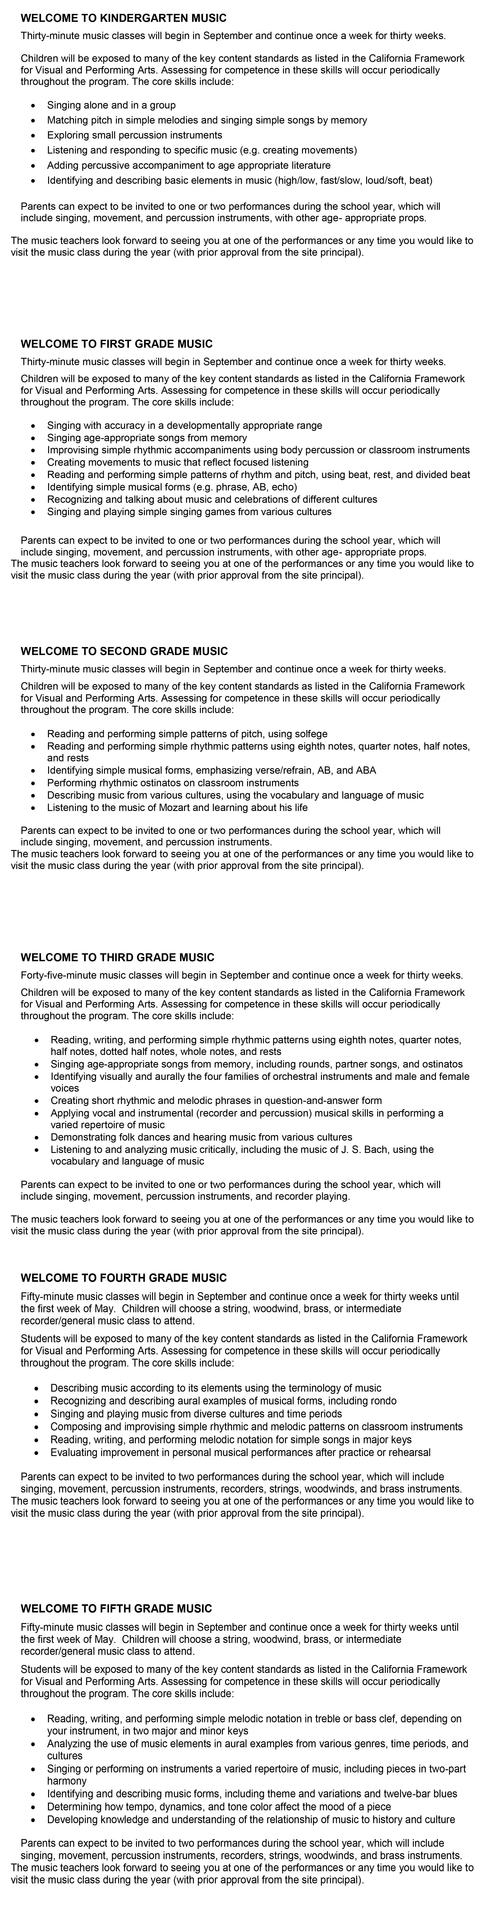 Music Curriculum Summary by Grade